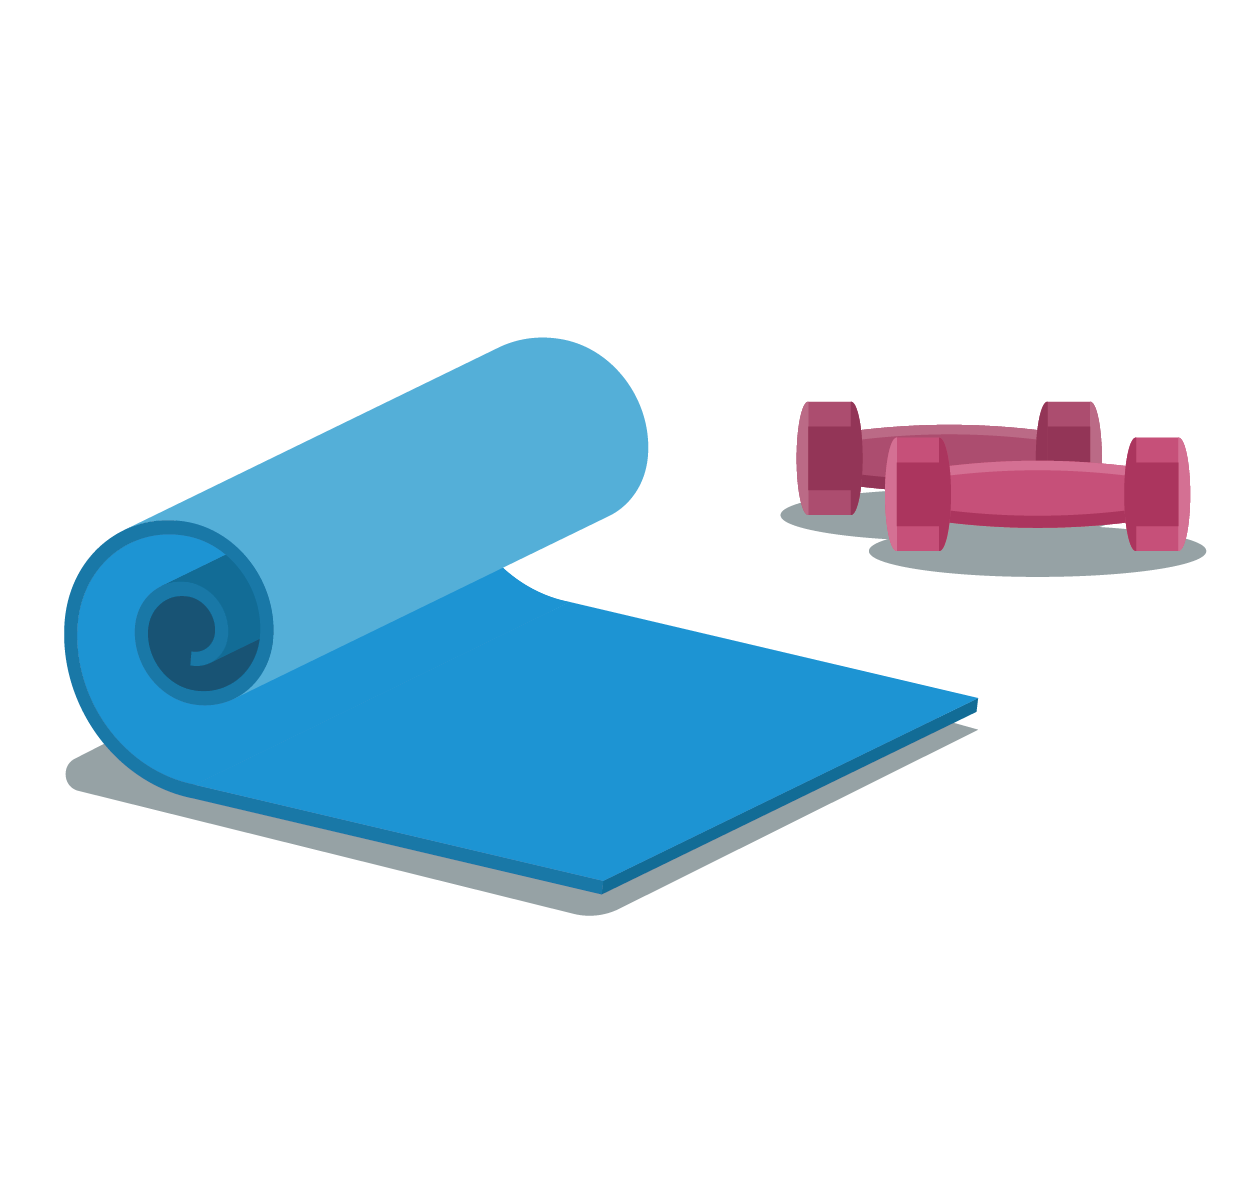 And Dumbbells Yoga Mat Vector Dumbbell PNG Image